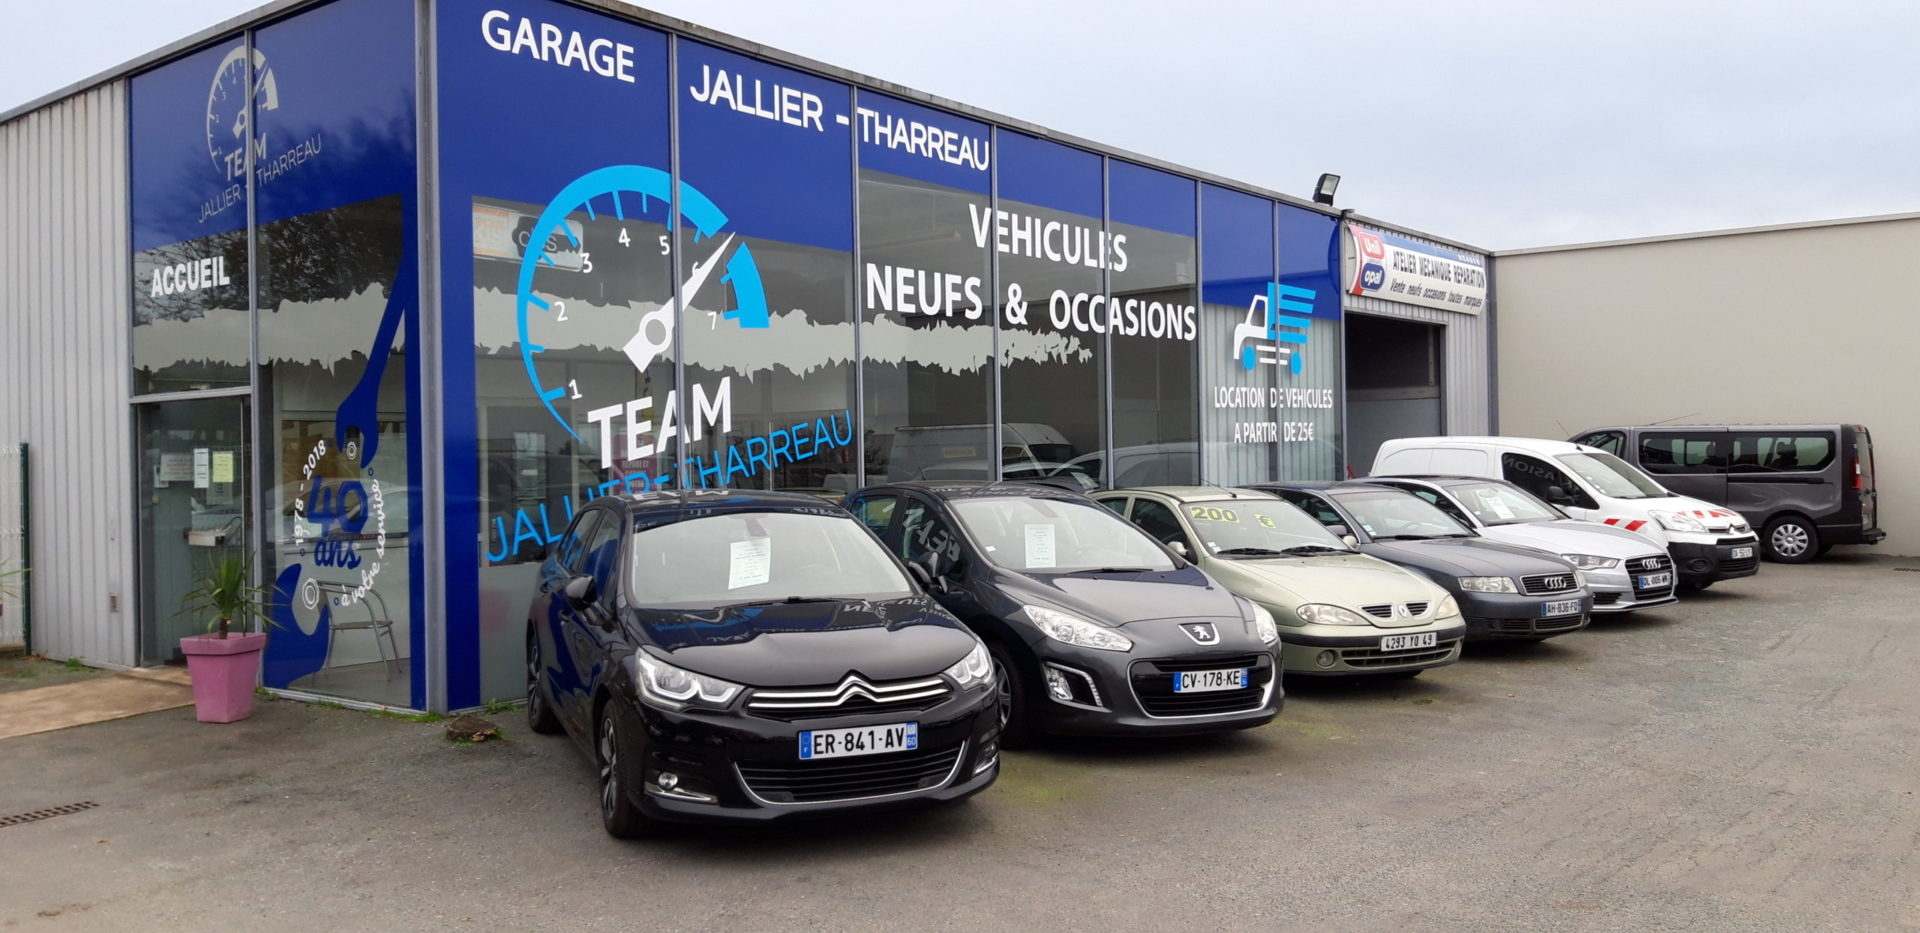 Garage Jallier Tharreau Garage Automobile Cholet Location Vehicule 9 Places 20201118 143928 1262